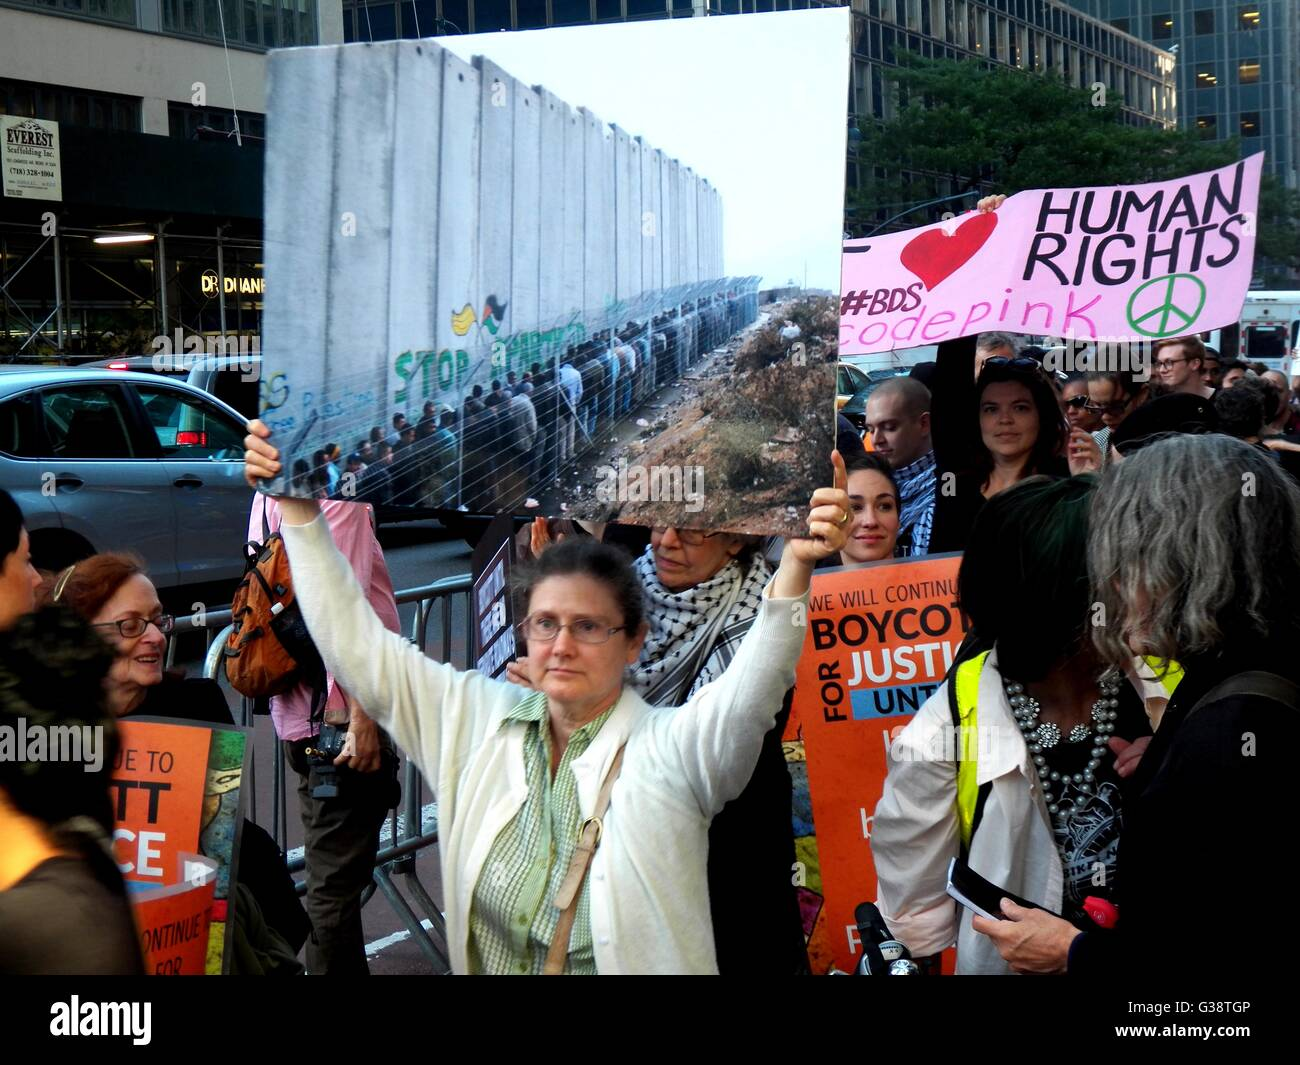 New York, USA. 09th June, 2016.  Protesters outside Governor Andrew Cuomo's office in New York City, many see - Stock Image